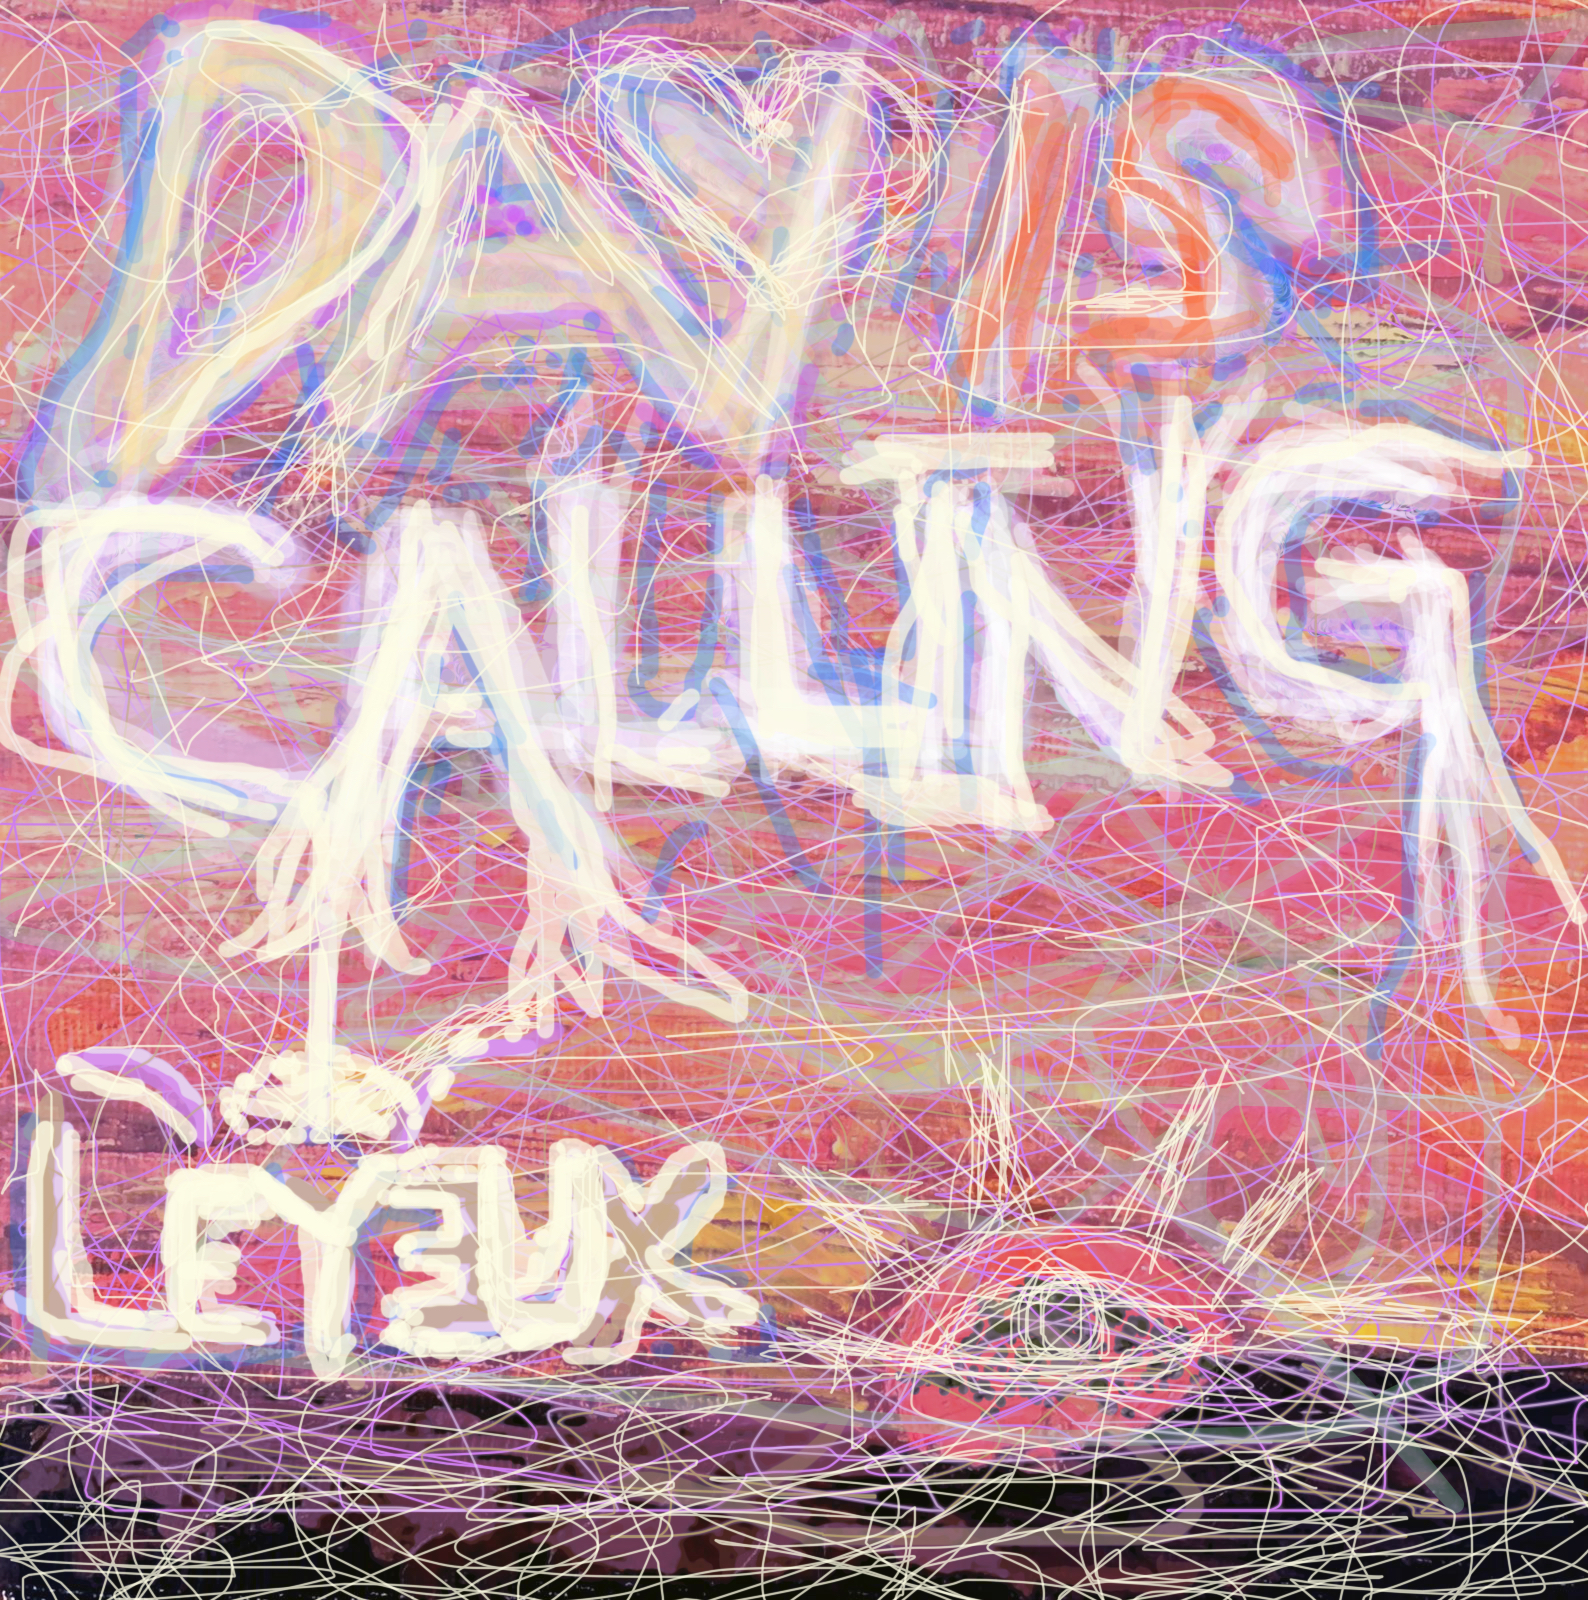 Day Is Calling - Leyeux